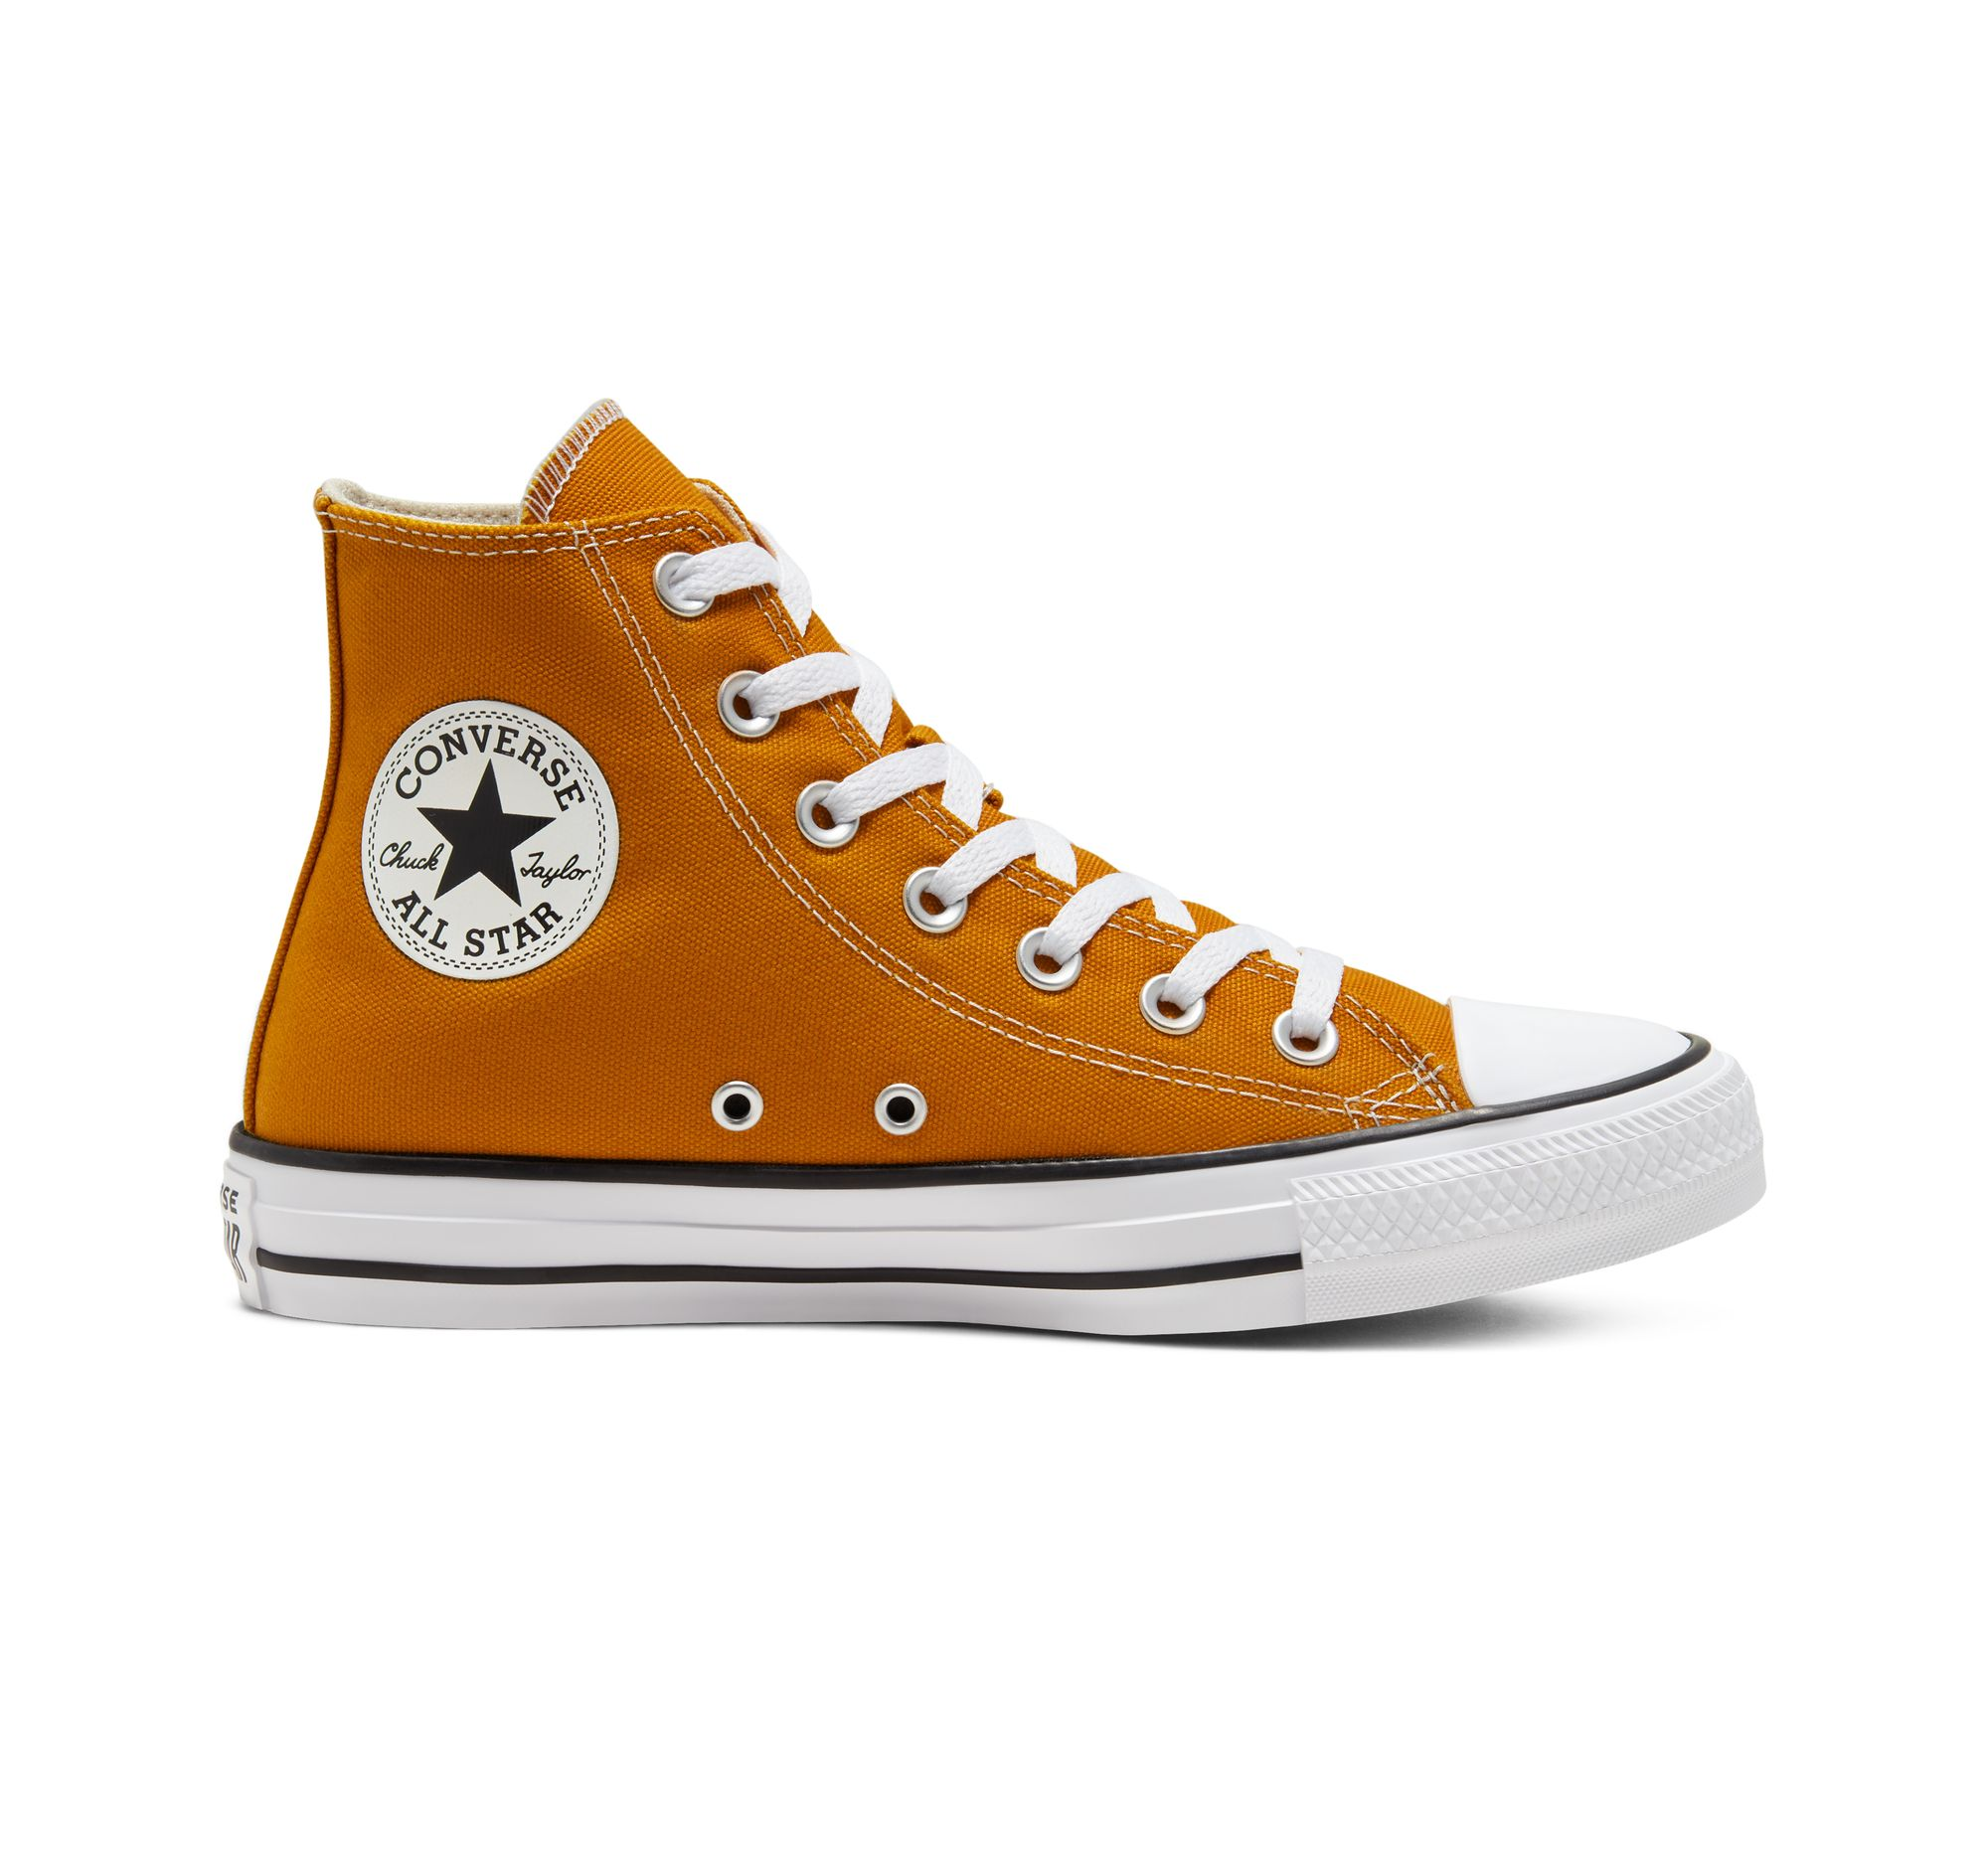 The most iconic, ever � in colors to match all your moods. EXPRESS YOURSELF WITH COLOR. The laidback legend is back in fresh colors. Ready for dressing up or down, these classic canvas Chucks are an everyday wardrobe staple. Plus, we�ve softened up the li